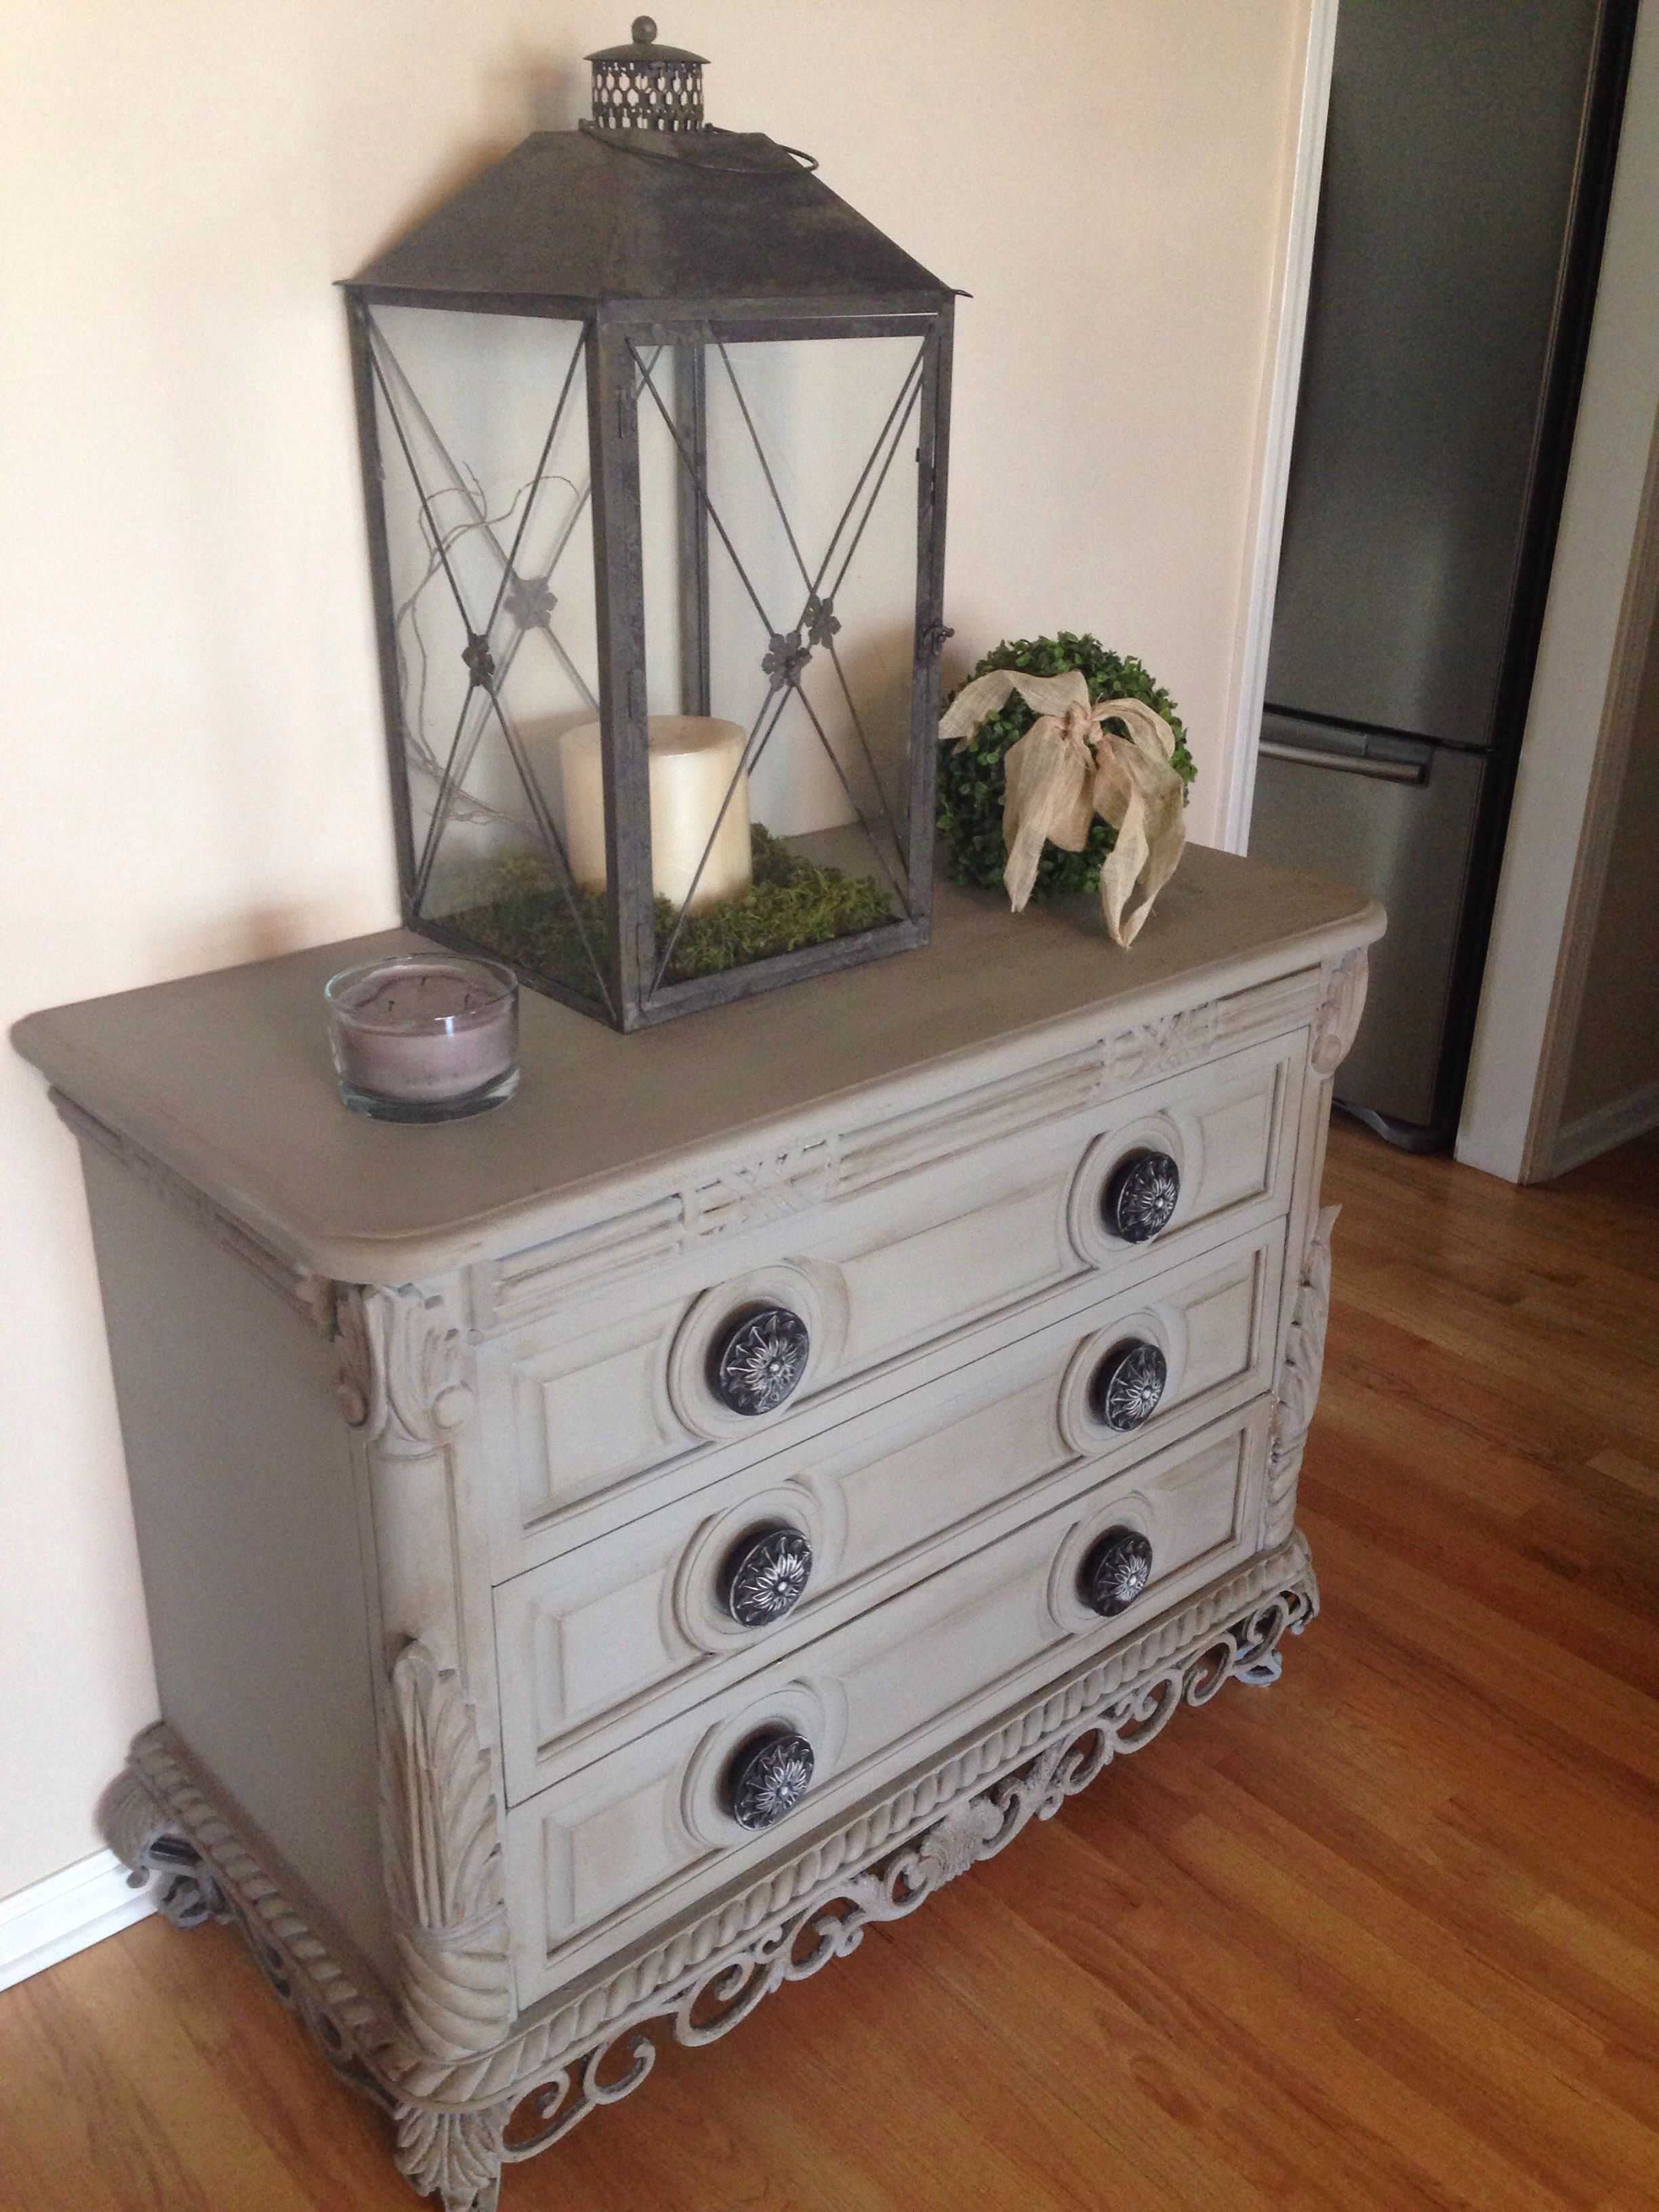 annie sloan paint in french linen painted furniture pinterest. Black Bedroom Furniture Sets. Home Design Ideas